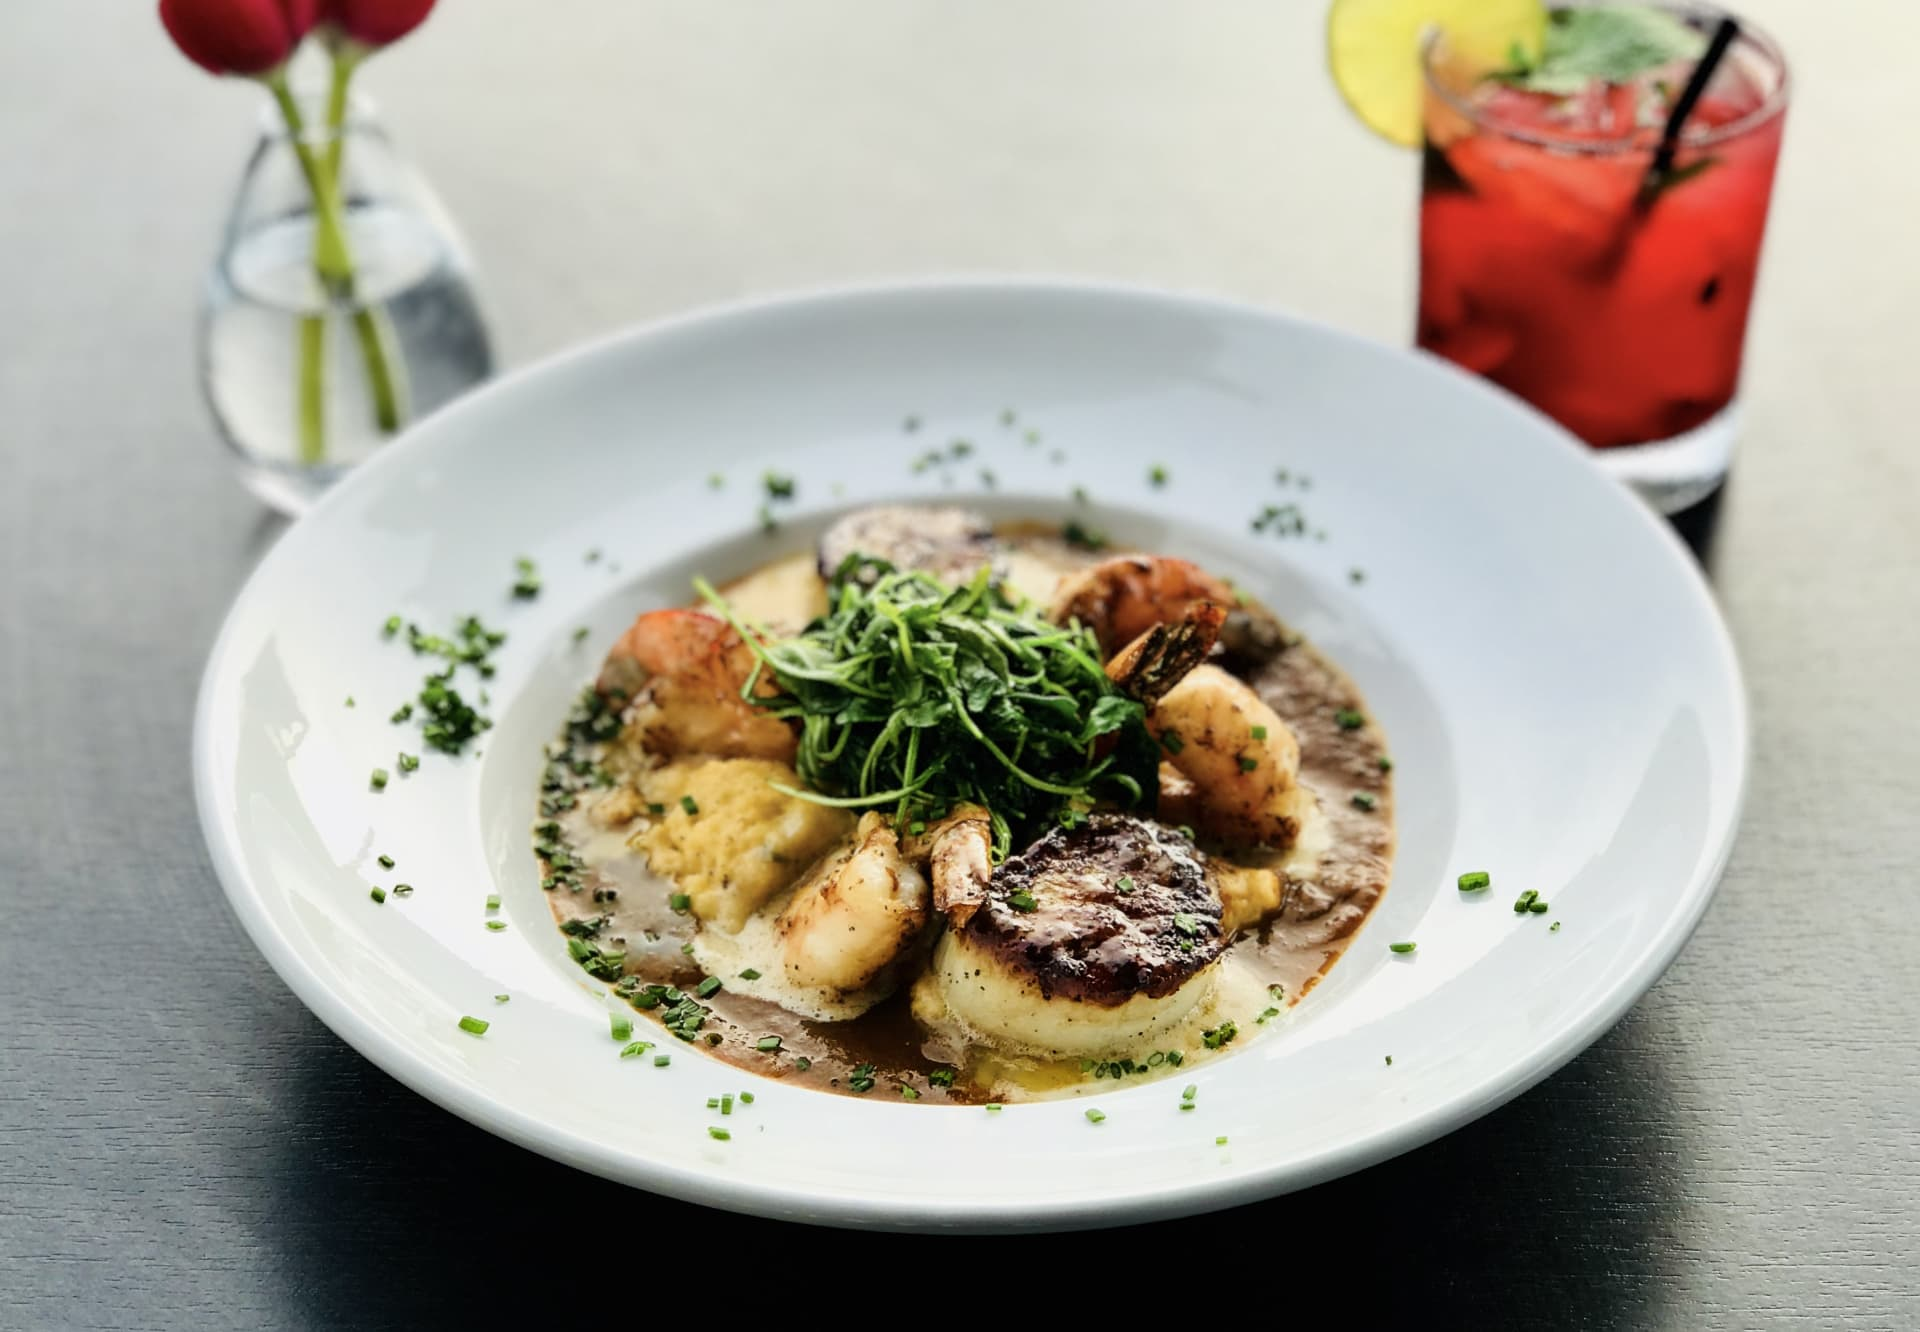 Southern Shrimp & Diver Scallop w/ Cheddar Jalapeno Grits, Sauteed Arugula & Lobster Gumbo Sauce